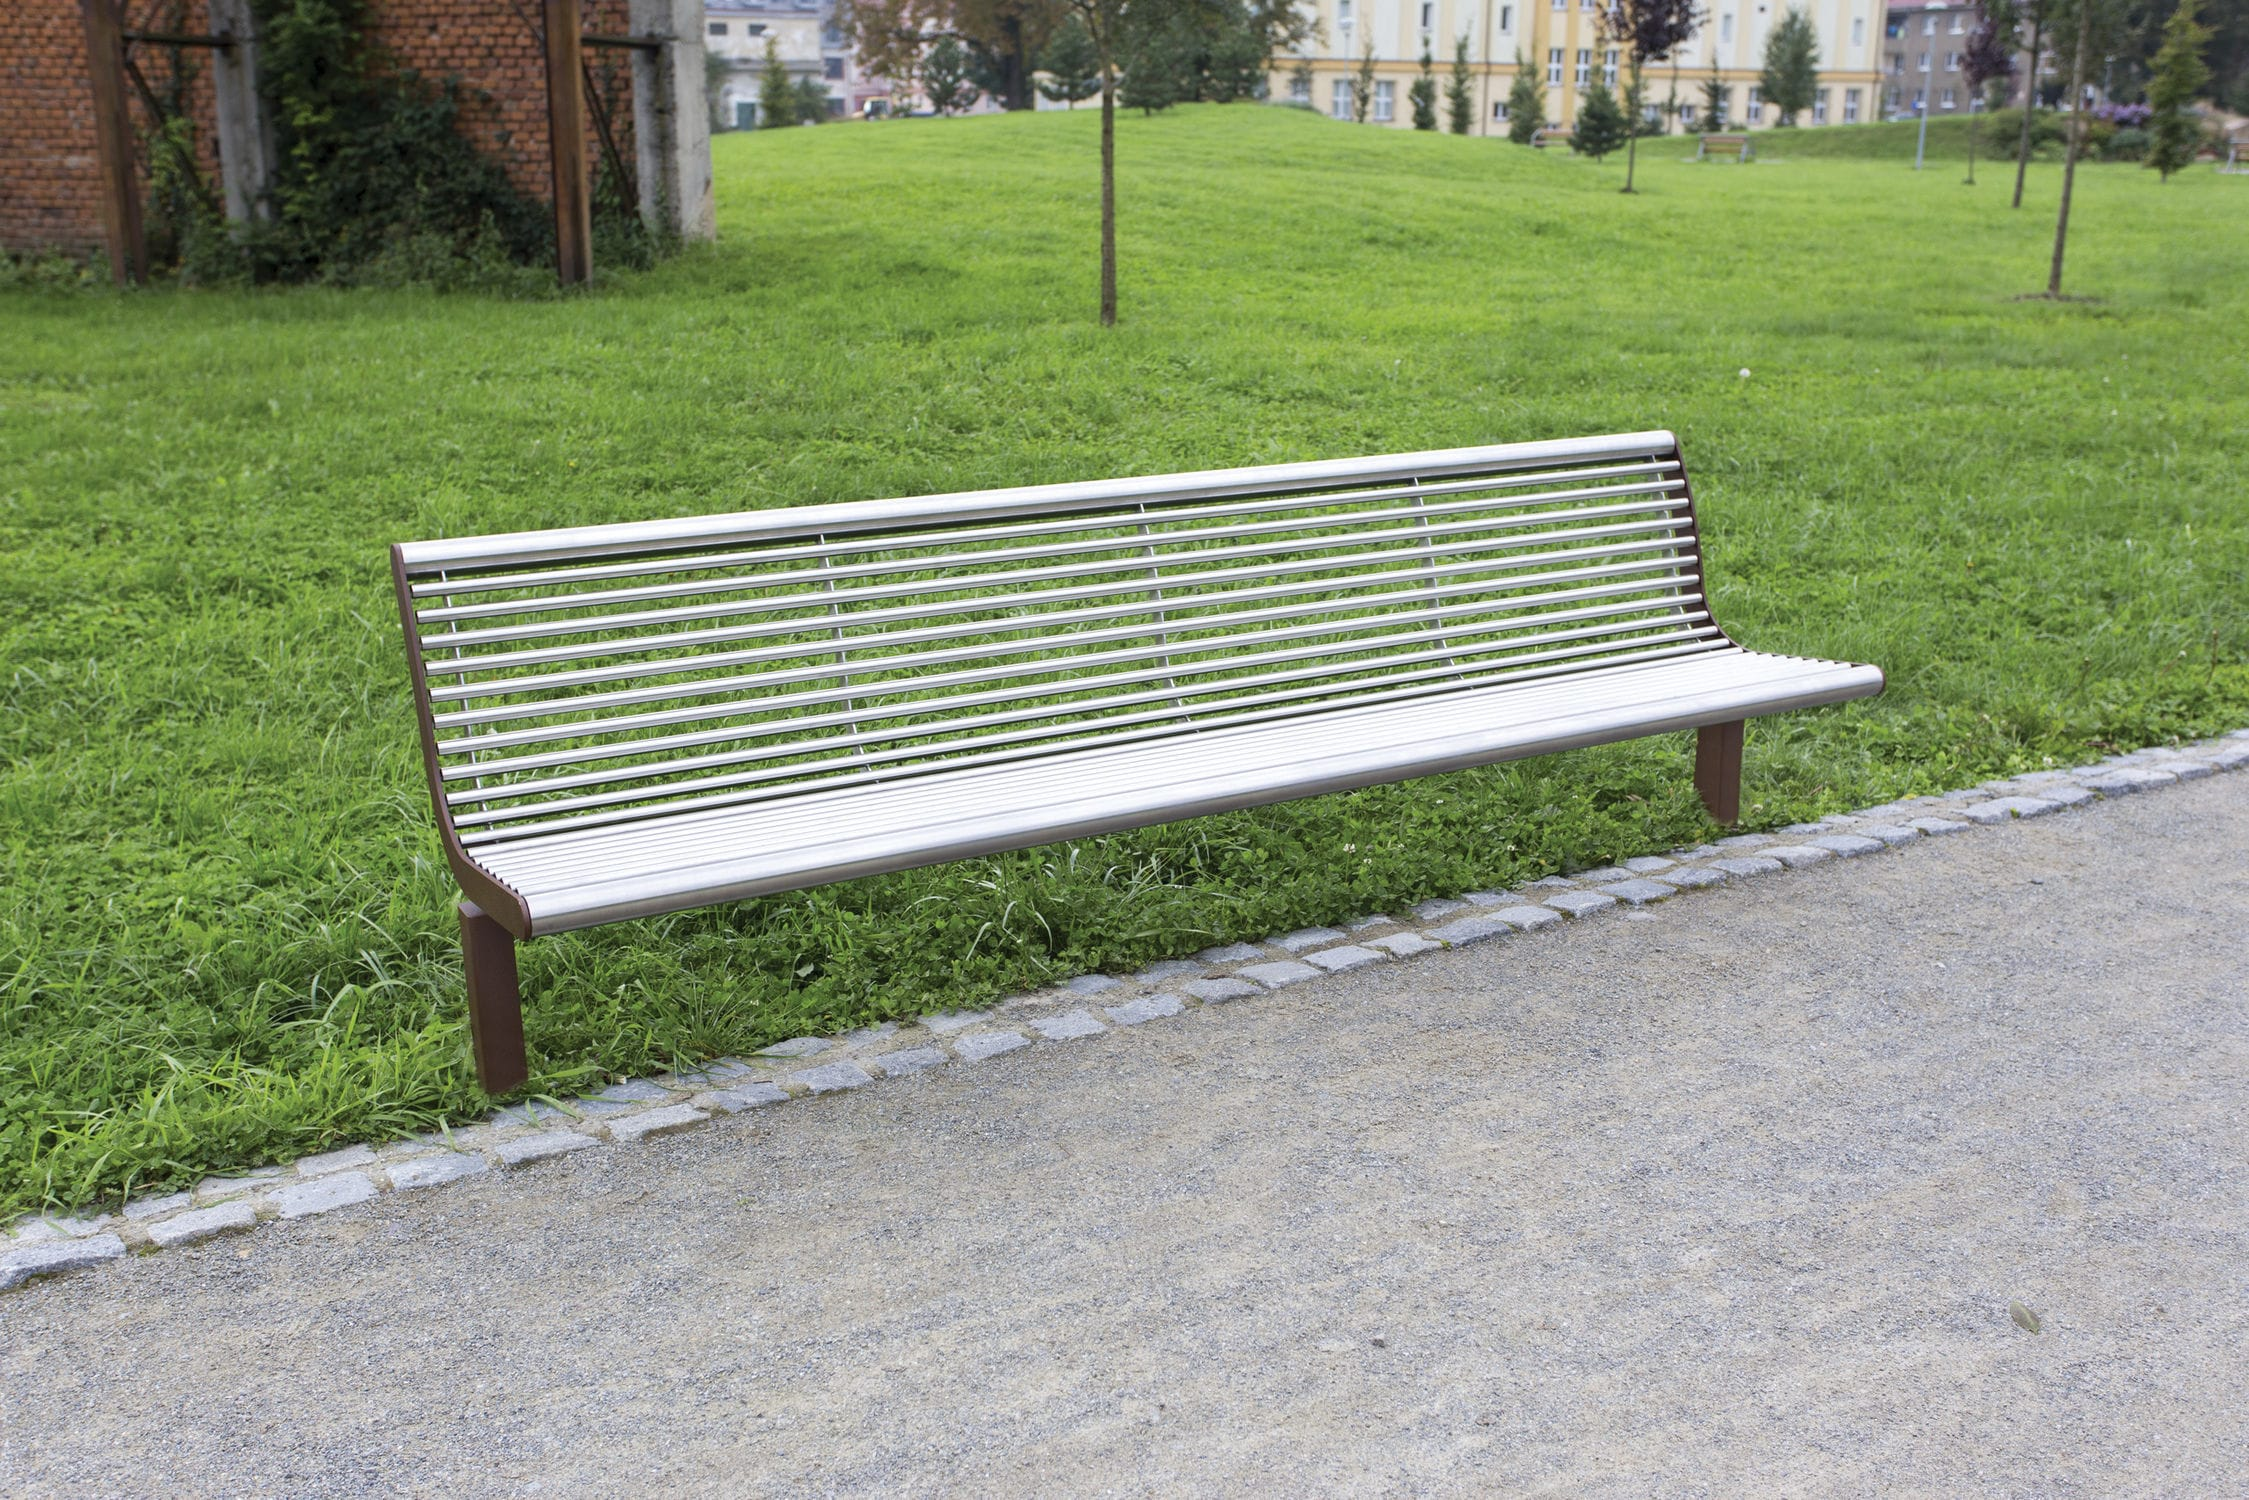 public bench / contemporary / stainless steel / galvanized steel